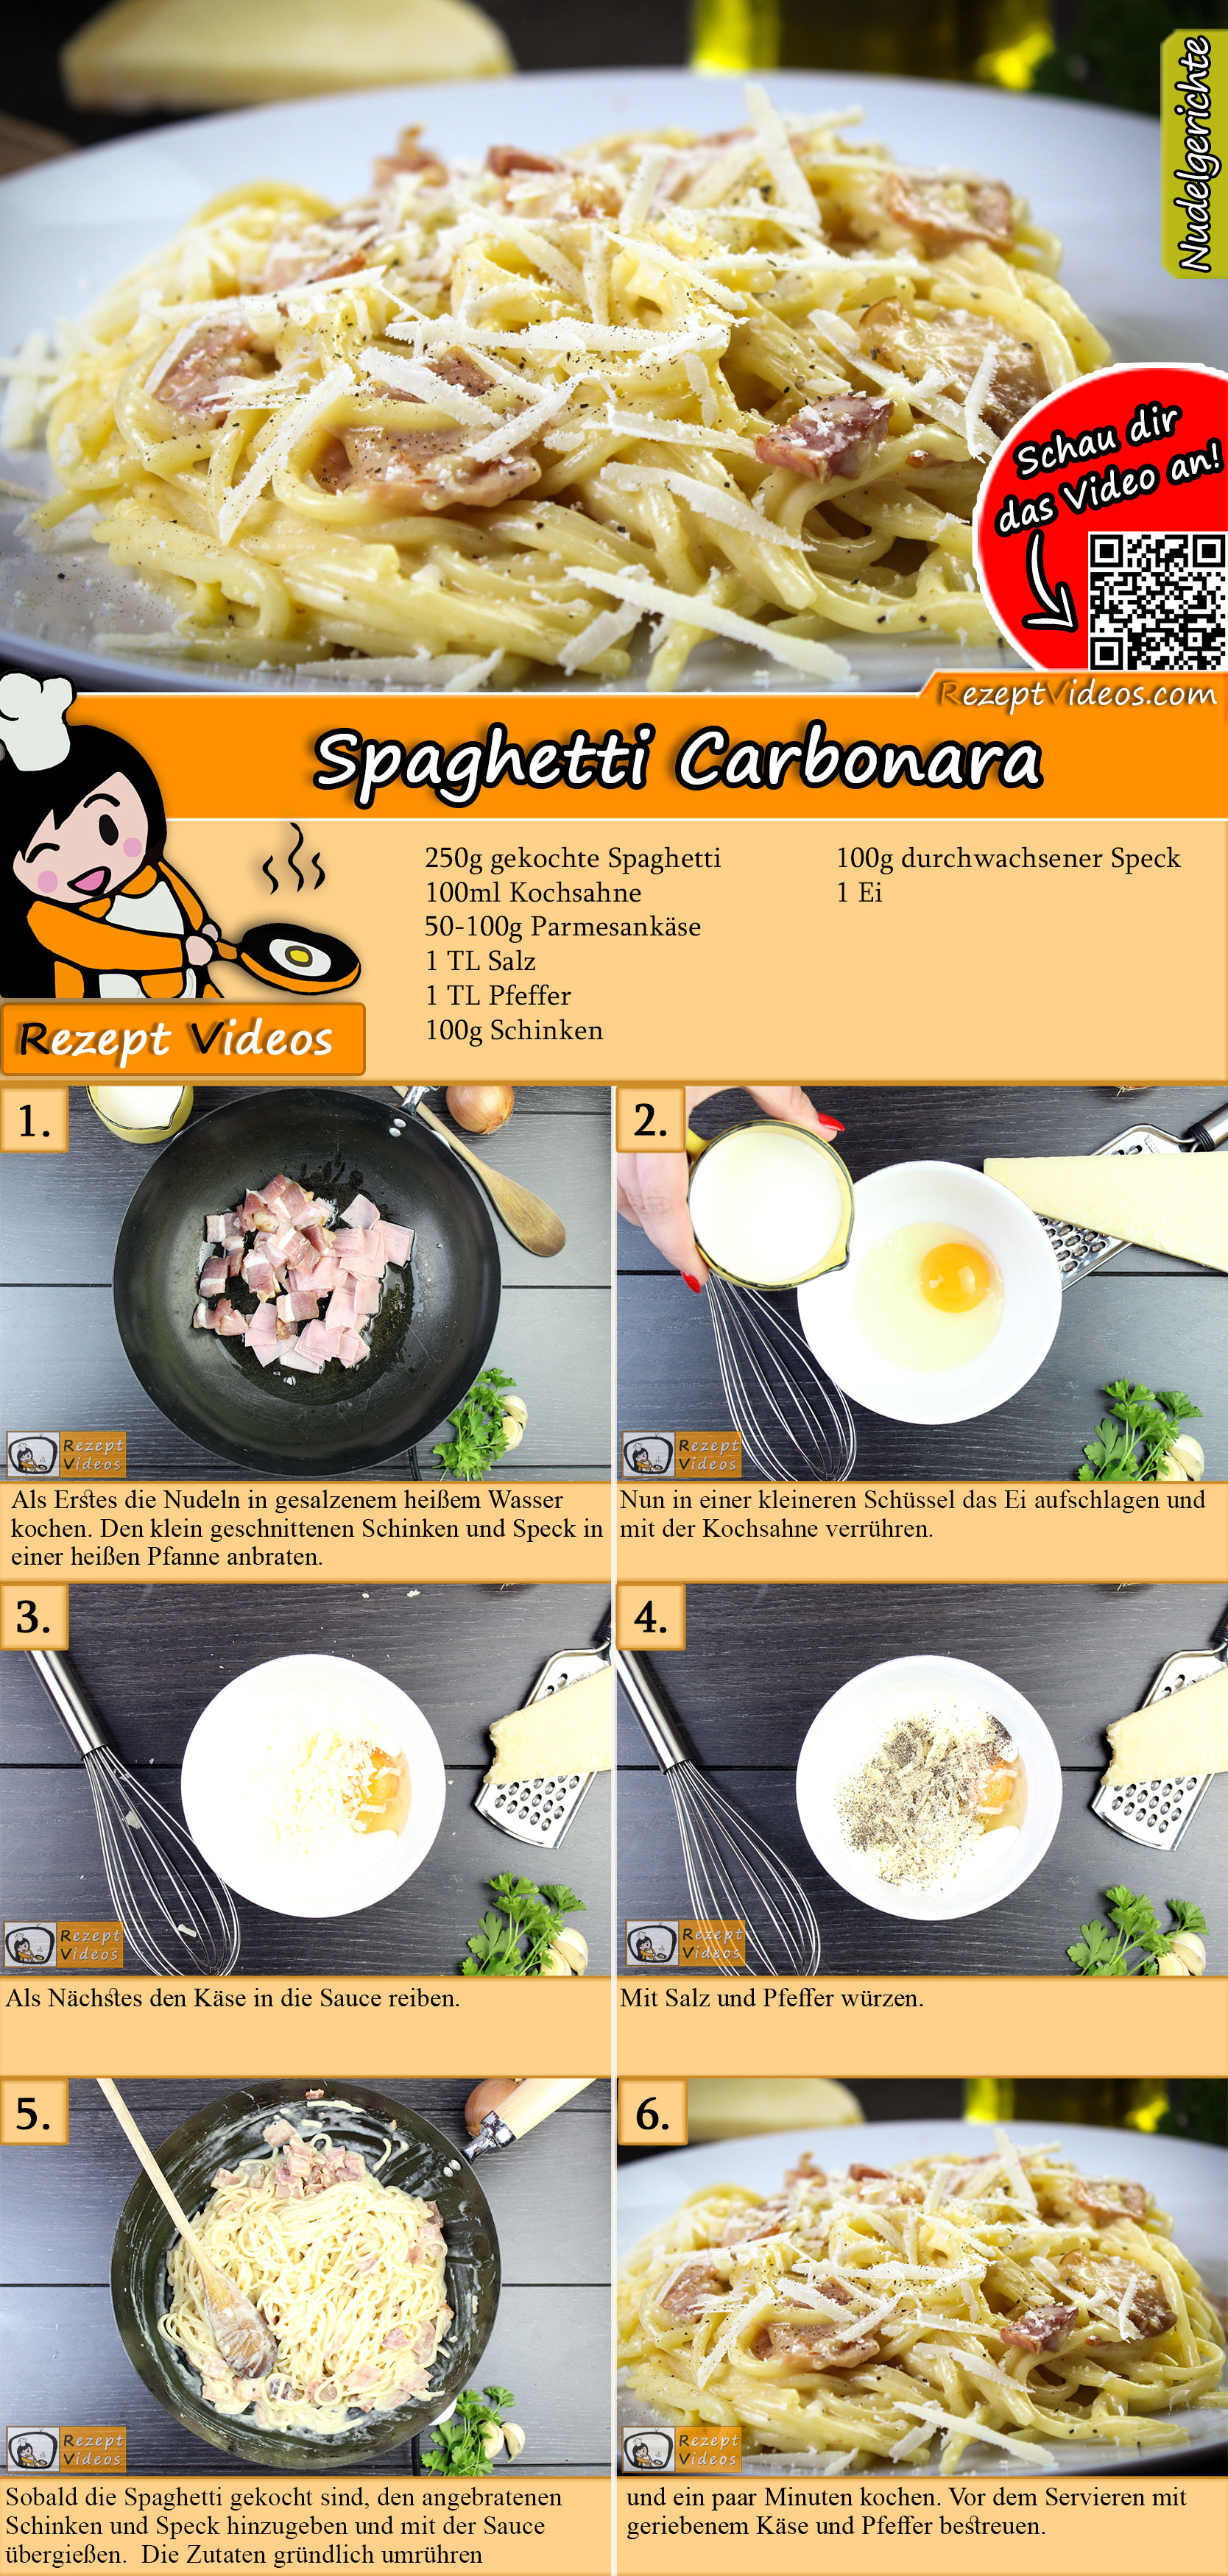 Spaghetti carbonara Rezept mit Video